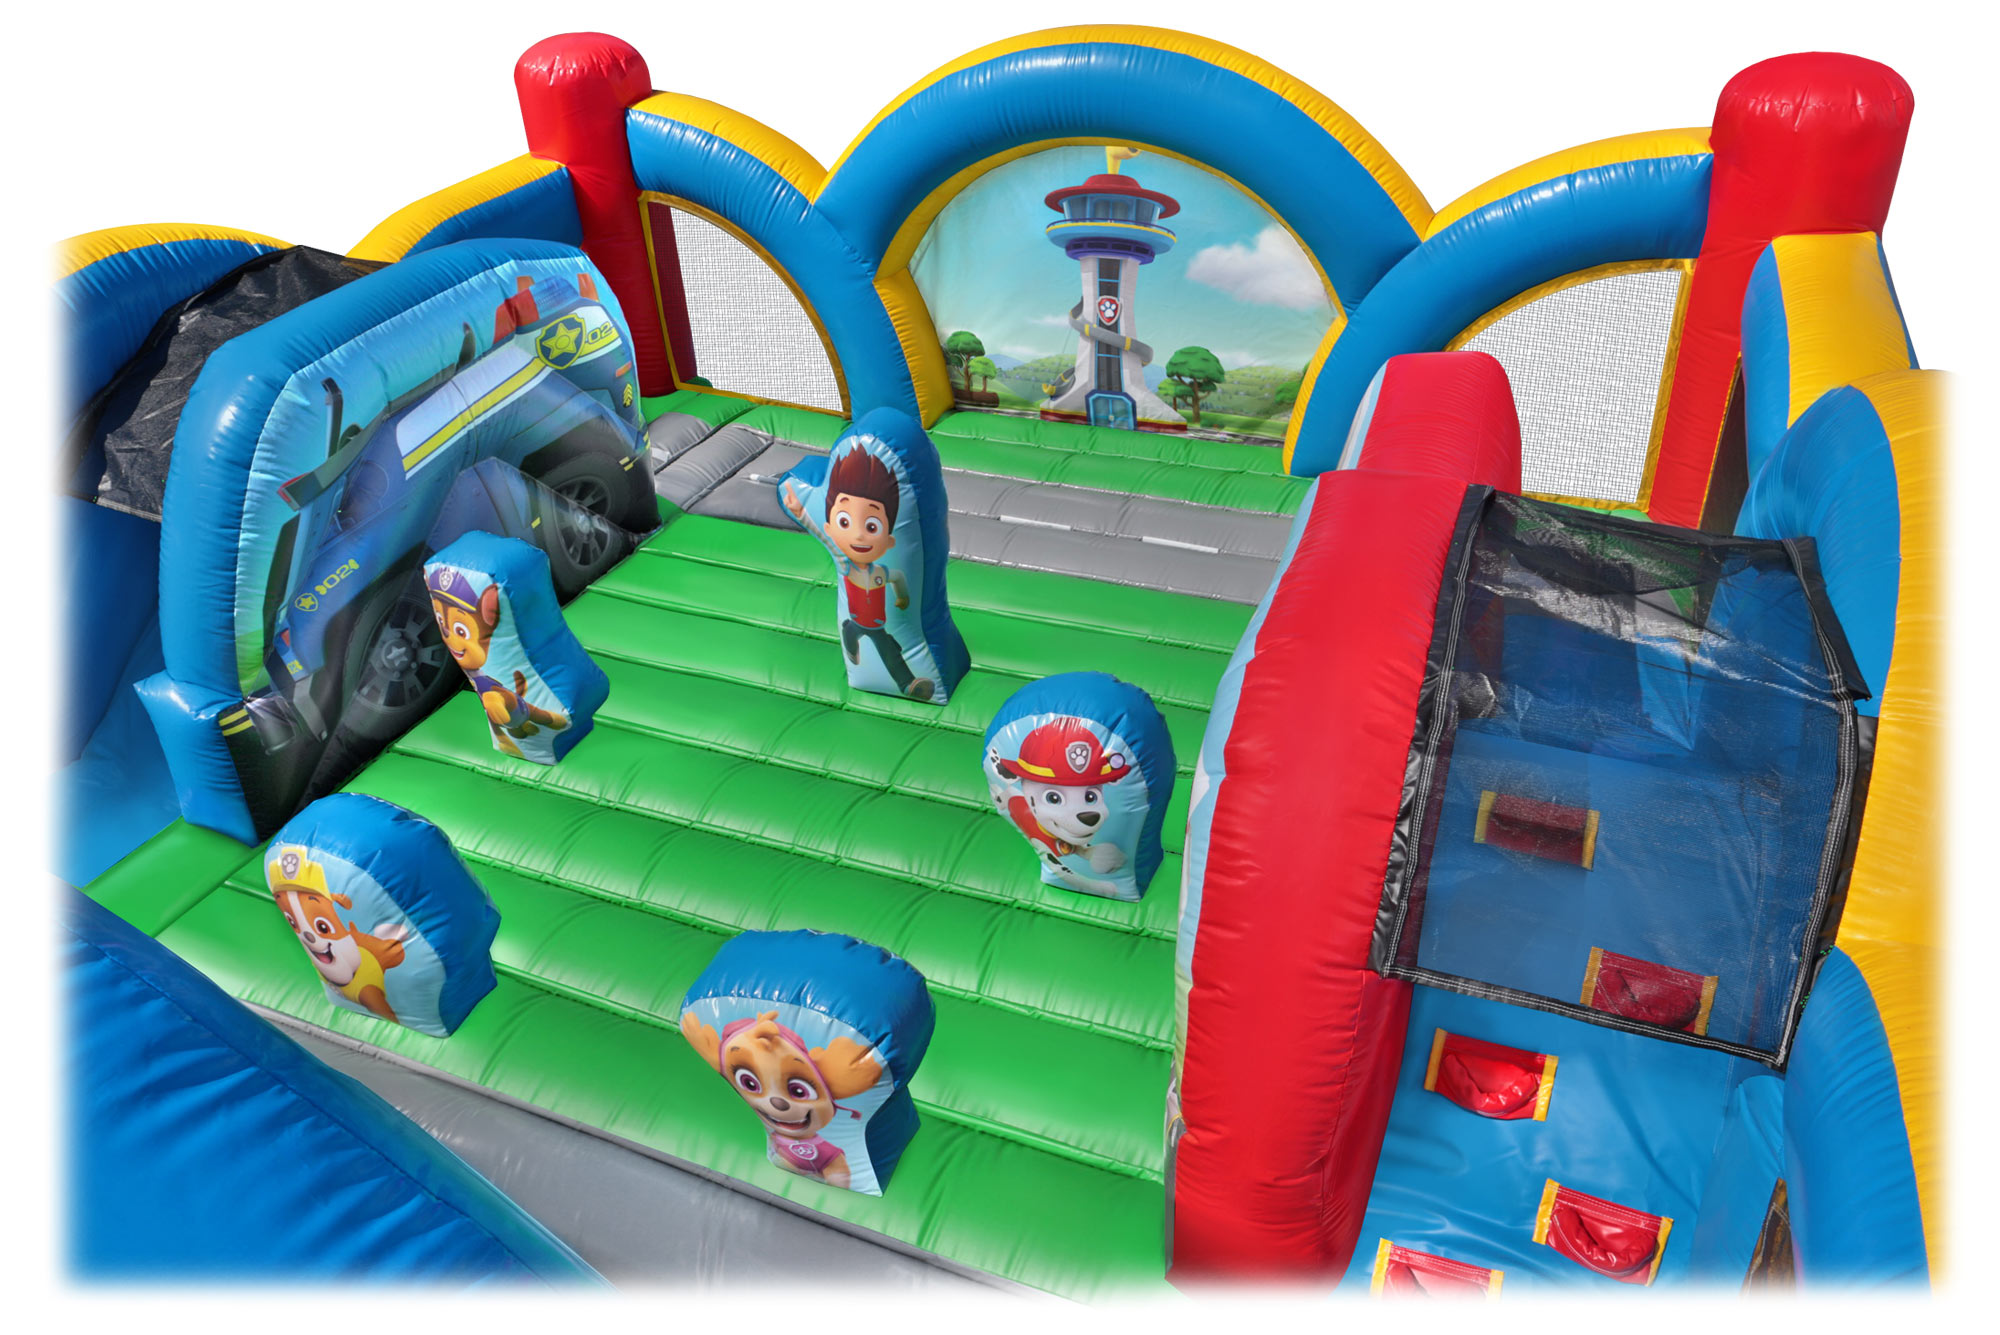 Inside the Kids Paw Patrol Bounce House Ryder and the Gang